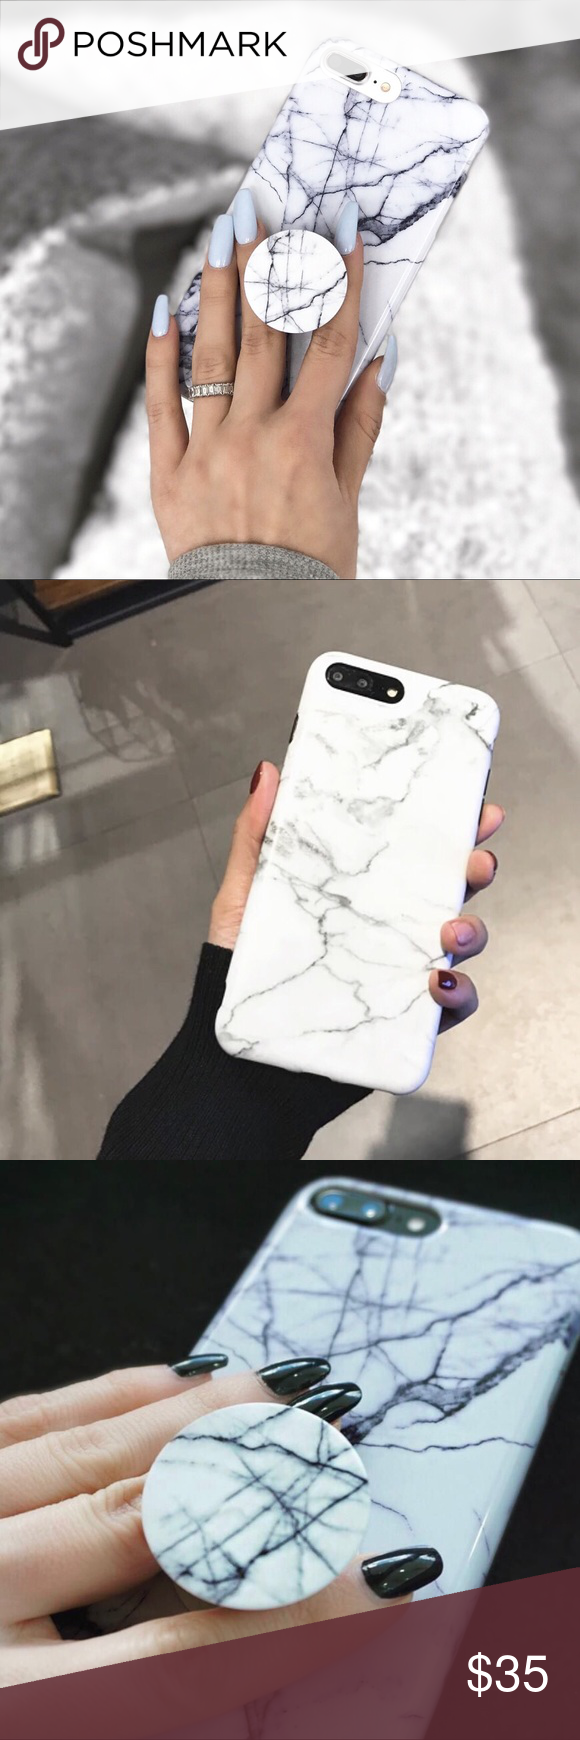 best loved 9e97f 3f659 BUNDLE DEAL* white marble iPhone case + popsocket *PREORDER NOW ...